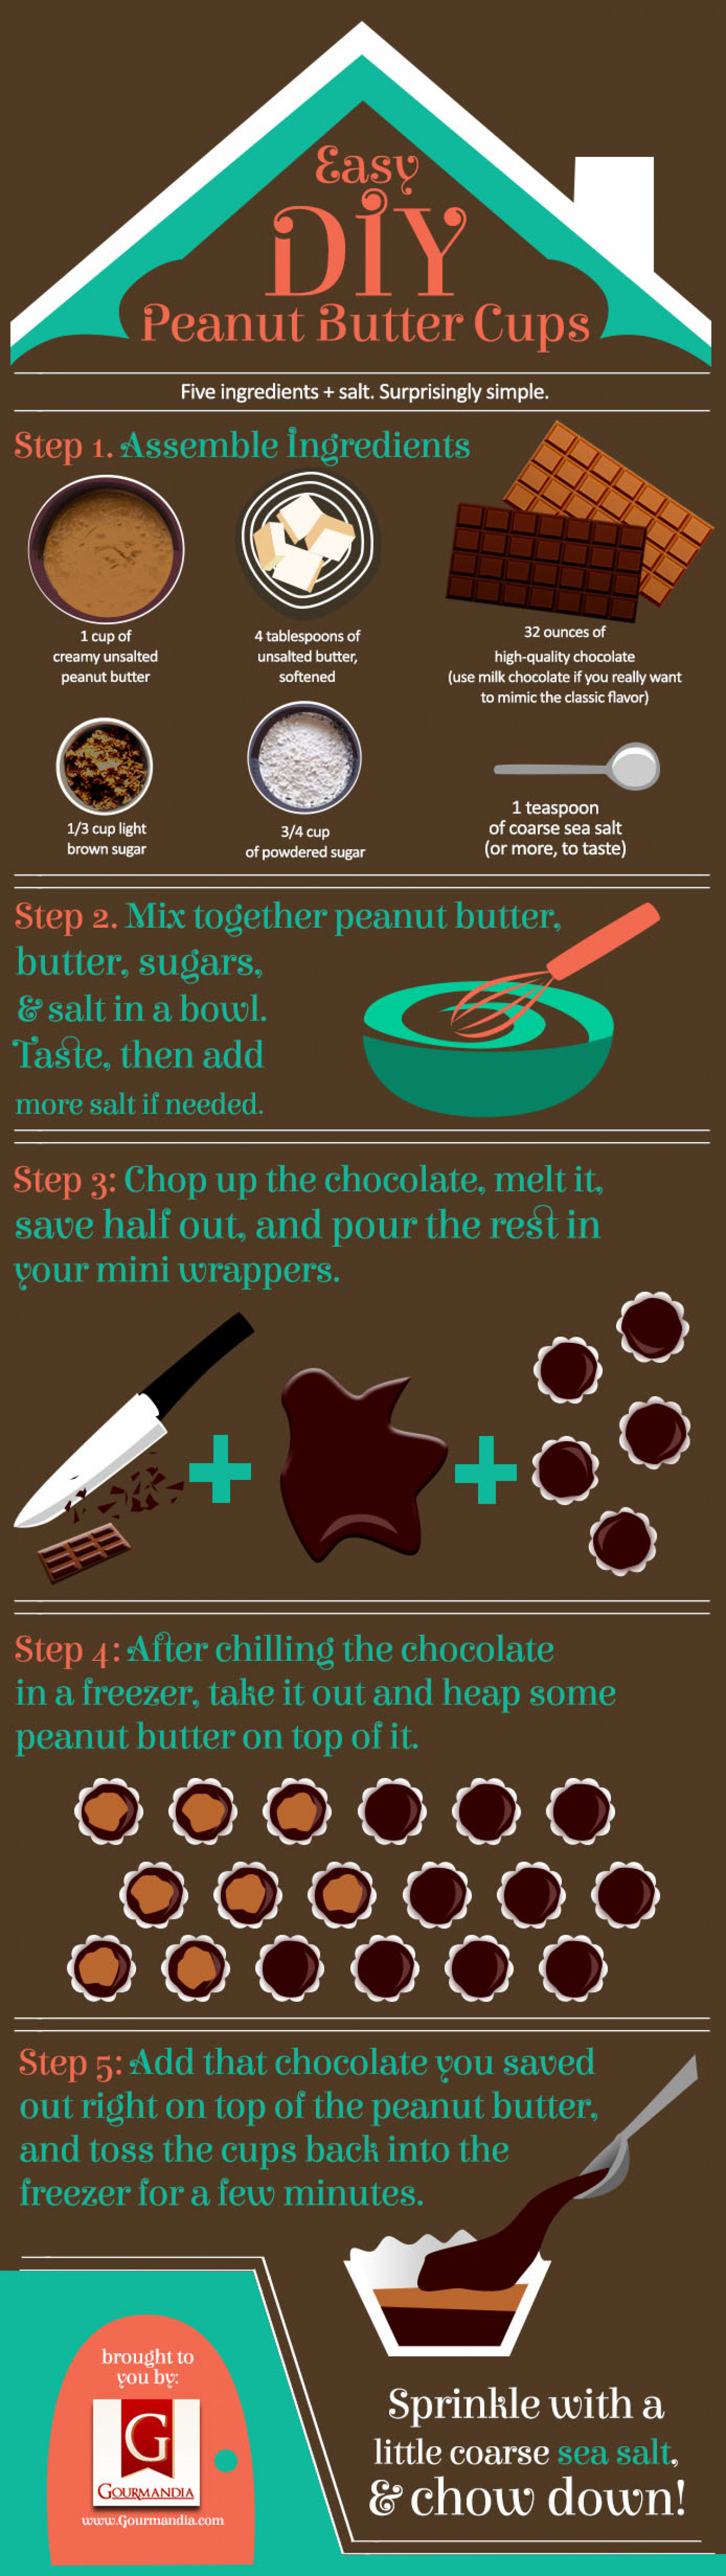 Easy DIY Peanut Butter Cups Infographic